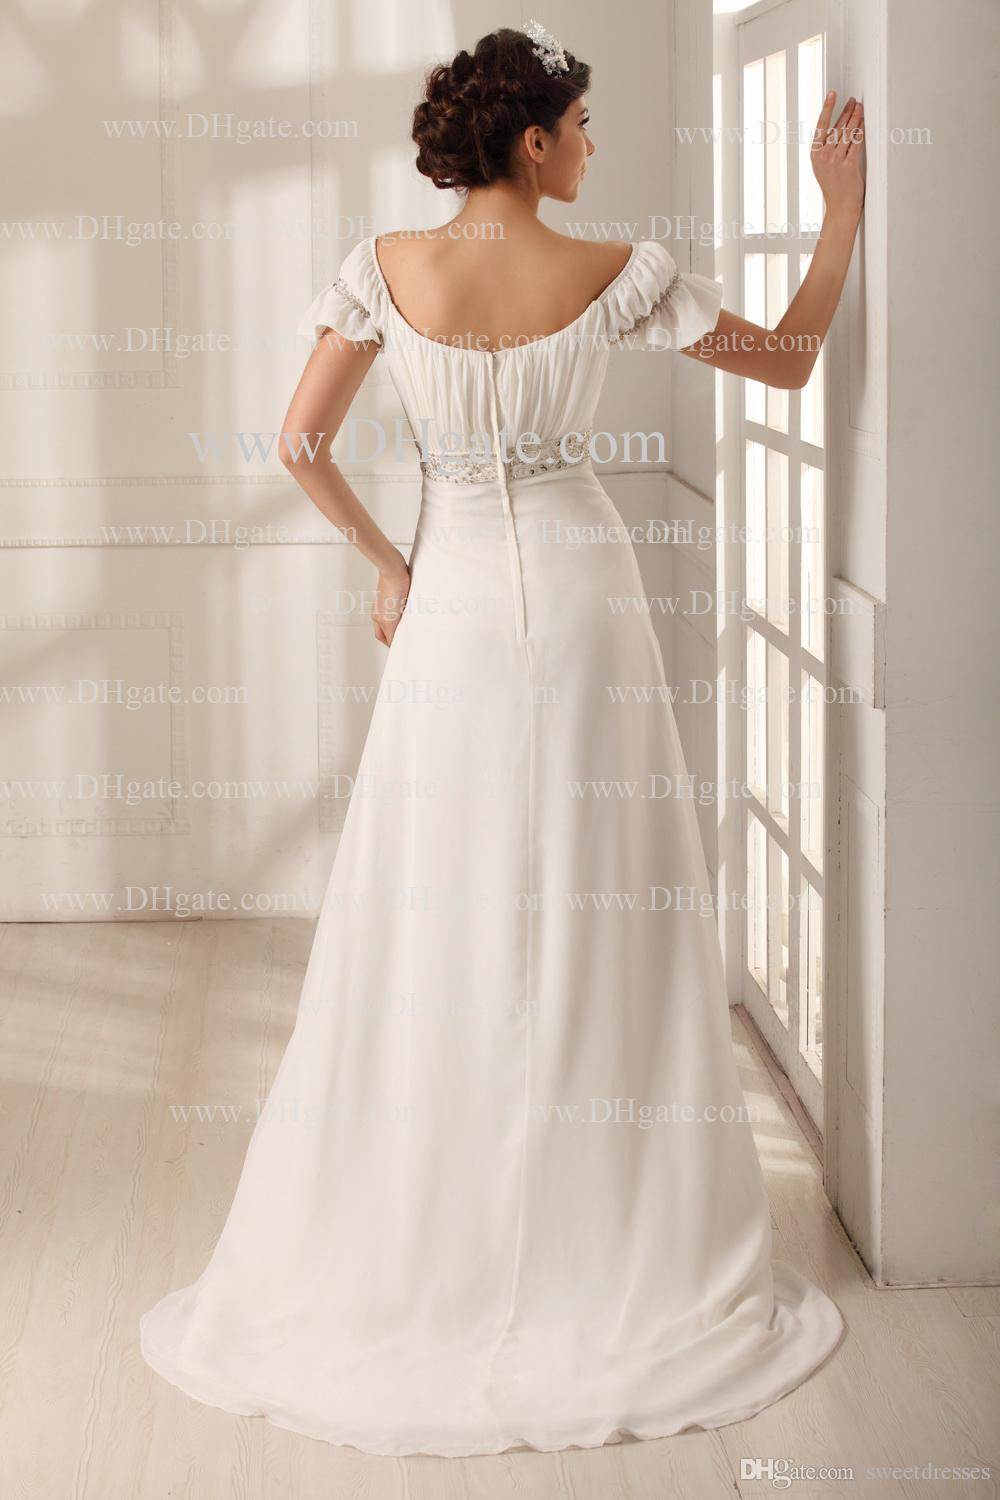 Plus Size Short Wedding Dresses Spring 2014